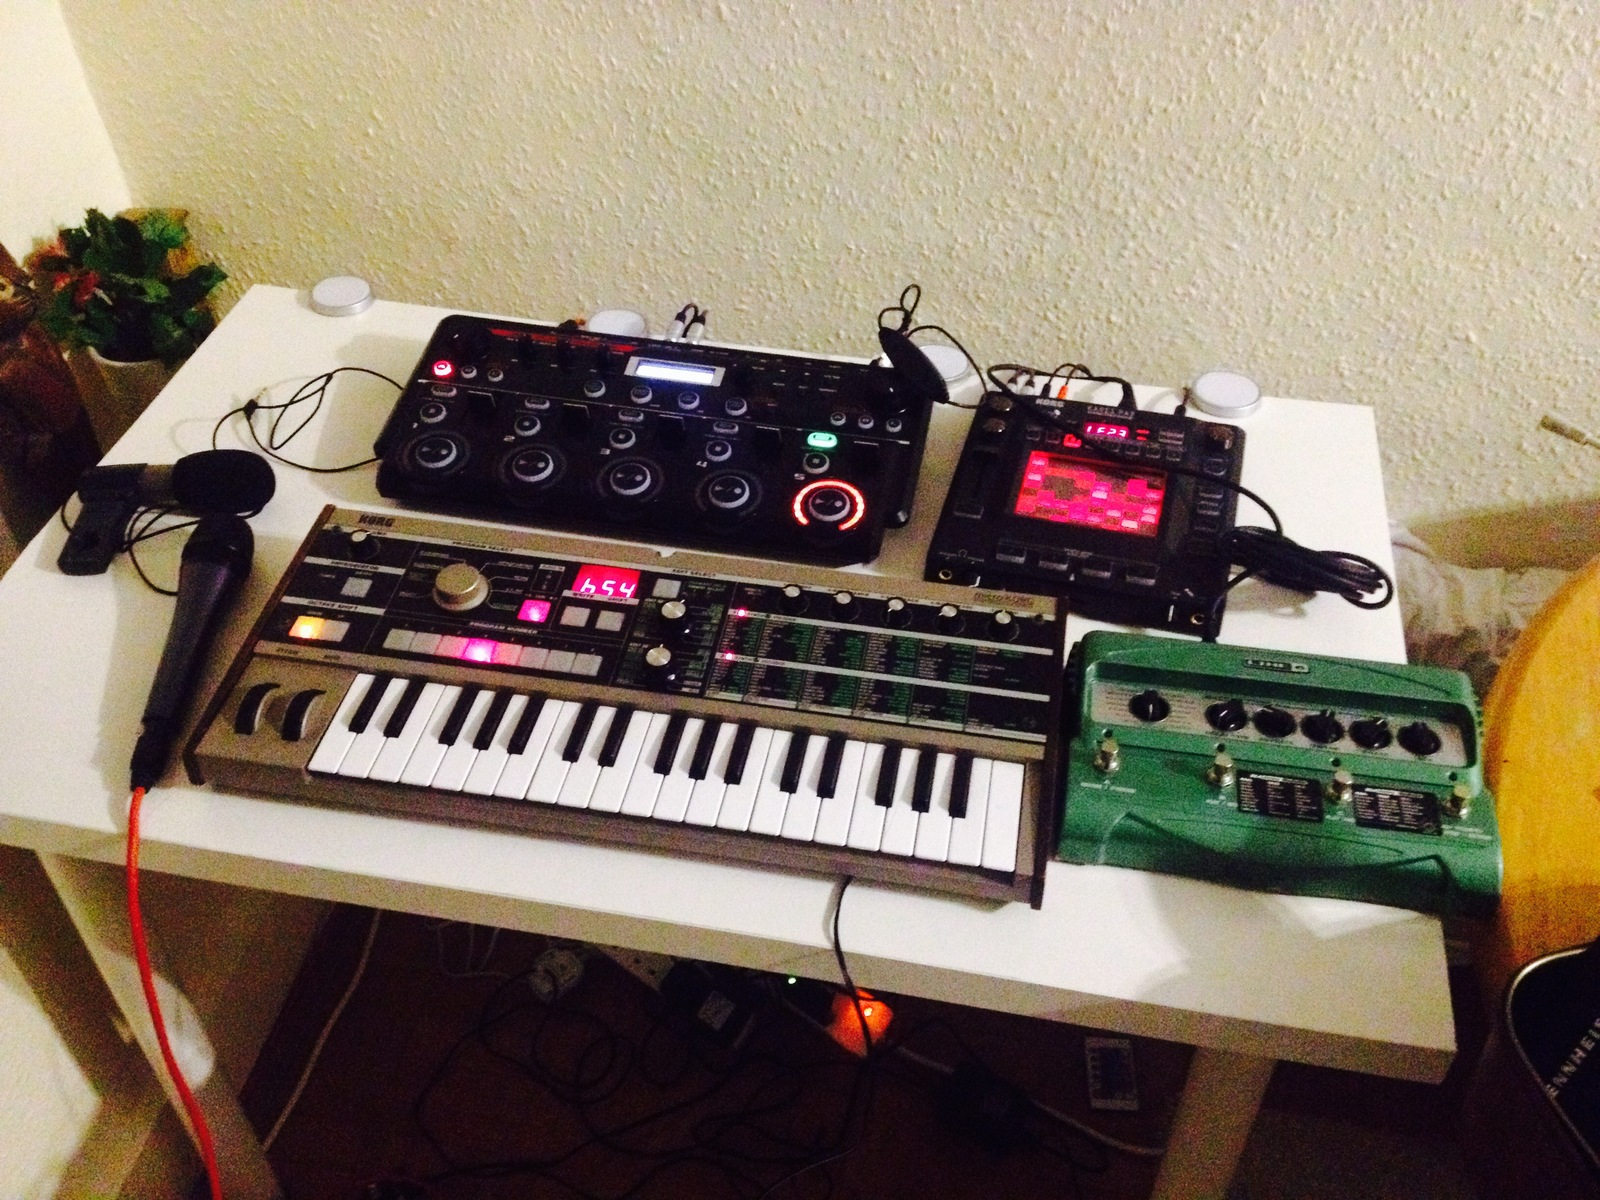 Photo of Line 6 DL4 Delay Modeler and more gear in a synths